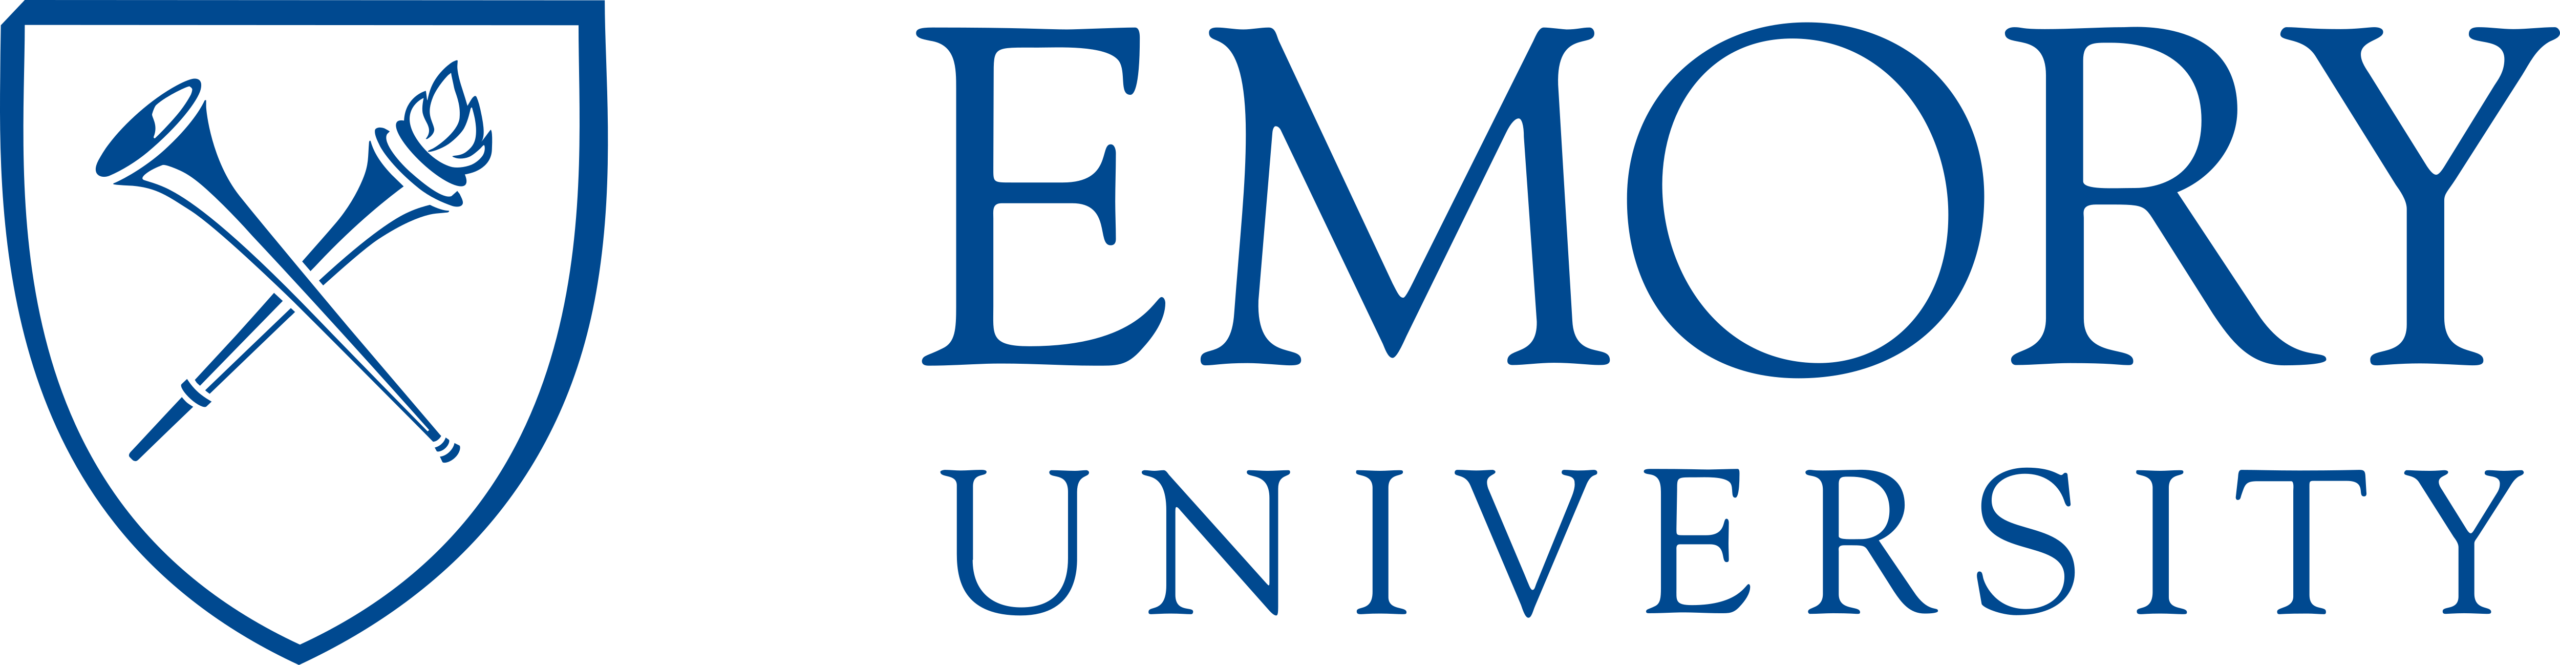 https://www.emory.edu/home/index.html